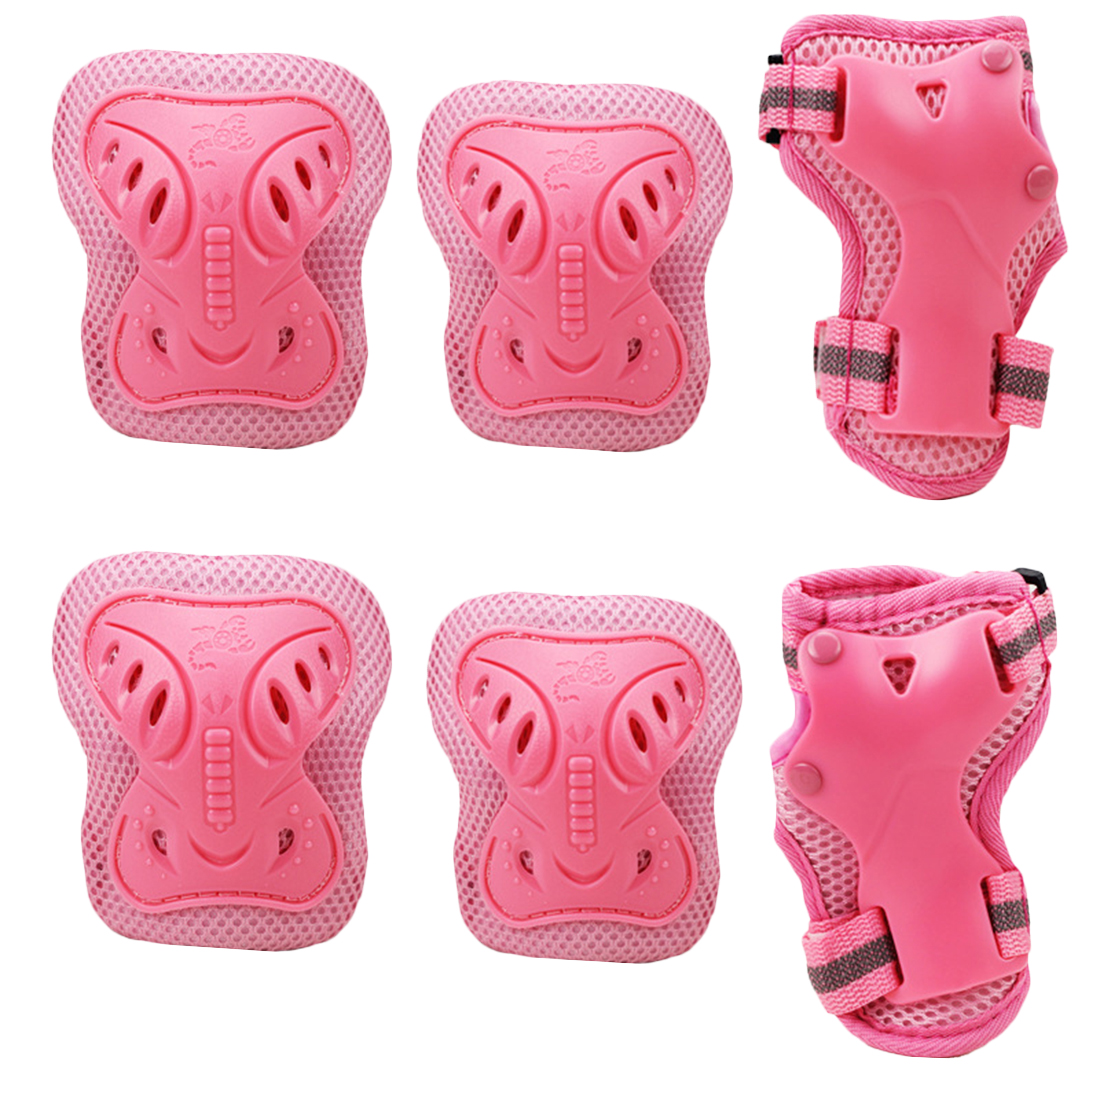 Sport Safety Protective Gear Guard Butterfly Elbow Wrist Knee Pads for Children Skateboard Skating Cycling Riding Blading Protective Set of 6pcs - Pink